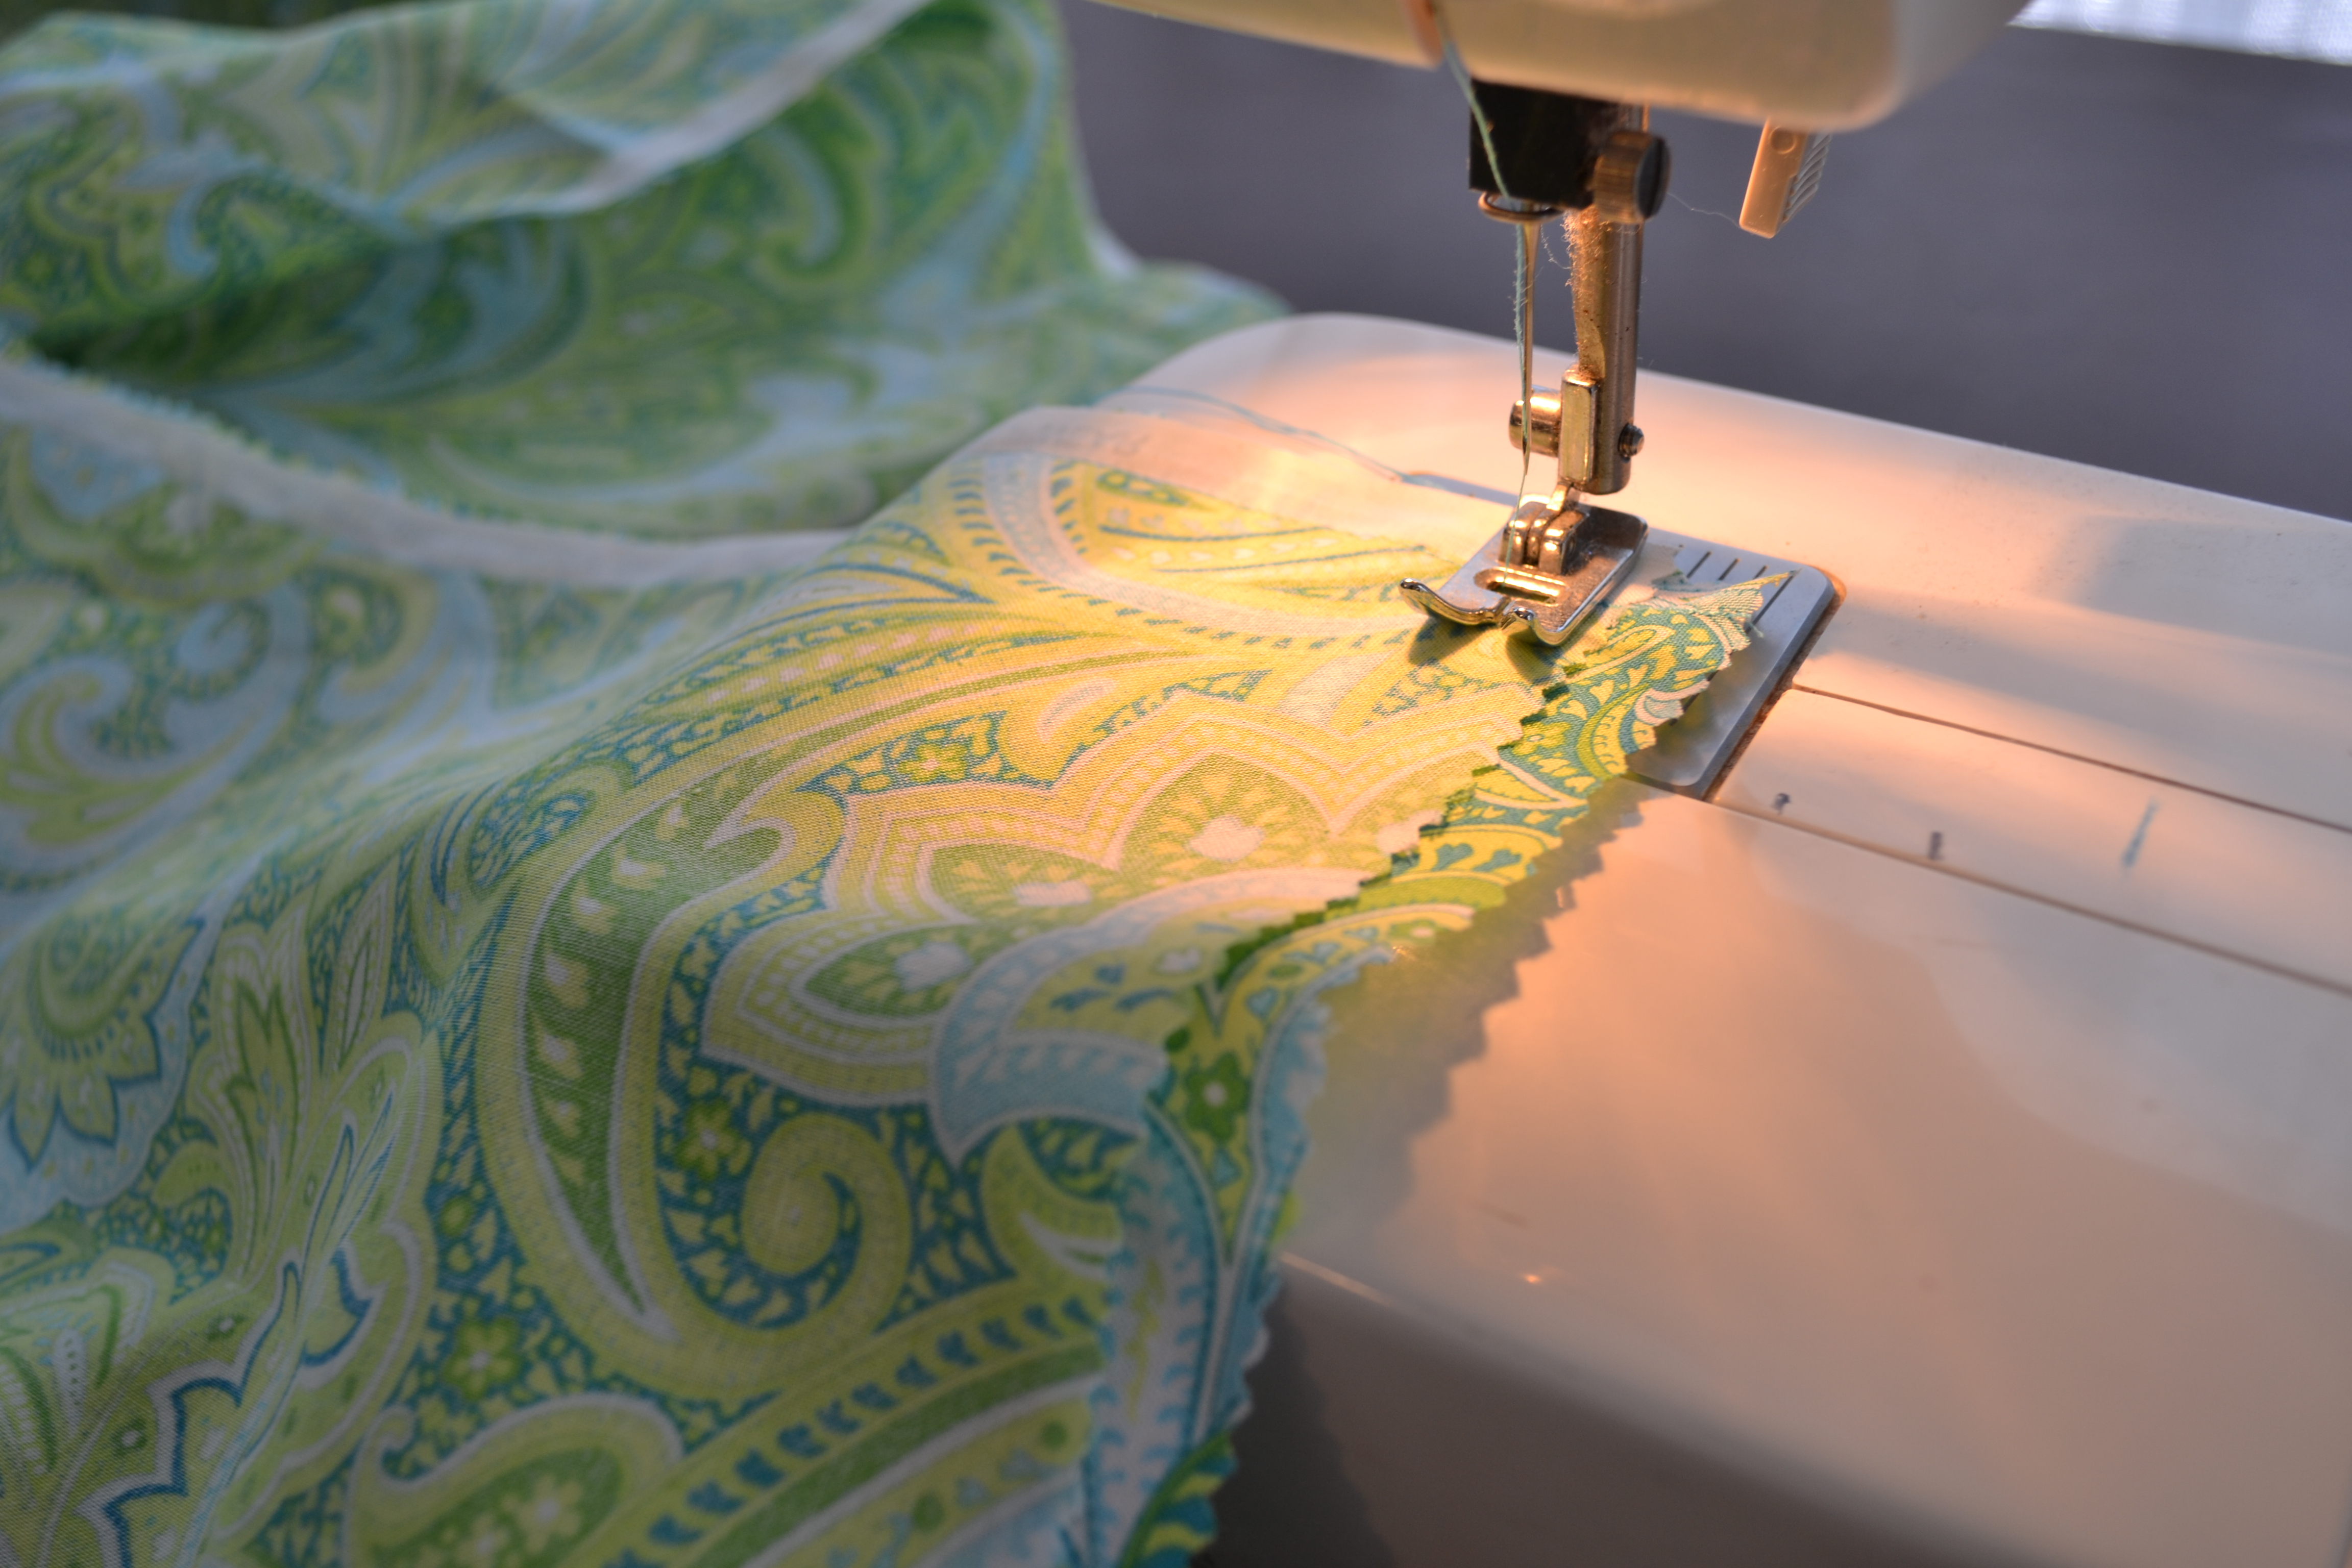 How to make a fabric table runner living well spending less sew the opposite sides together to form a long tube for your table runner watchthetrailerfo